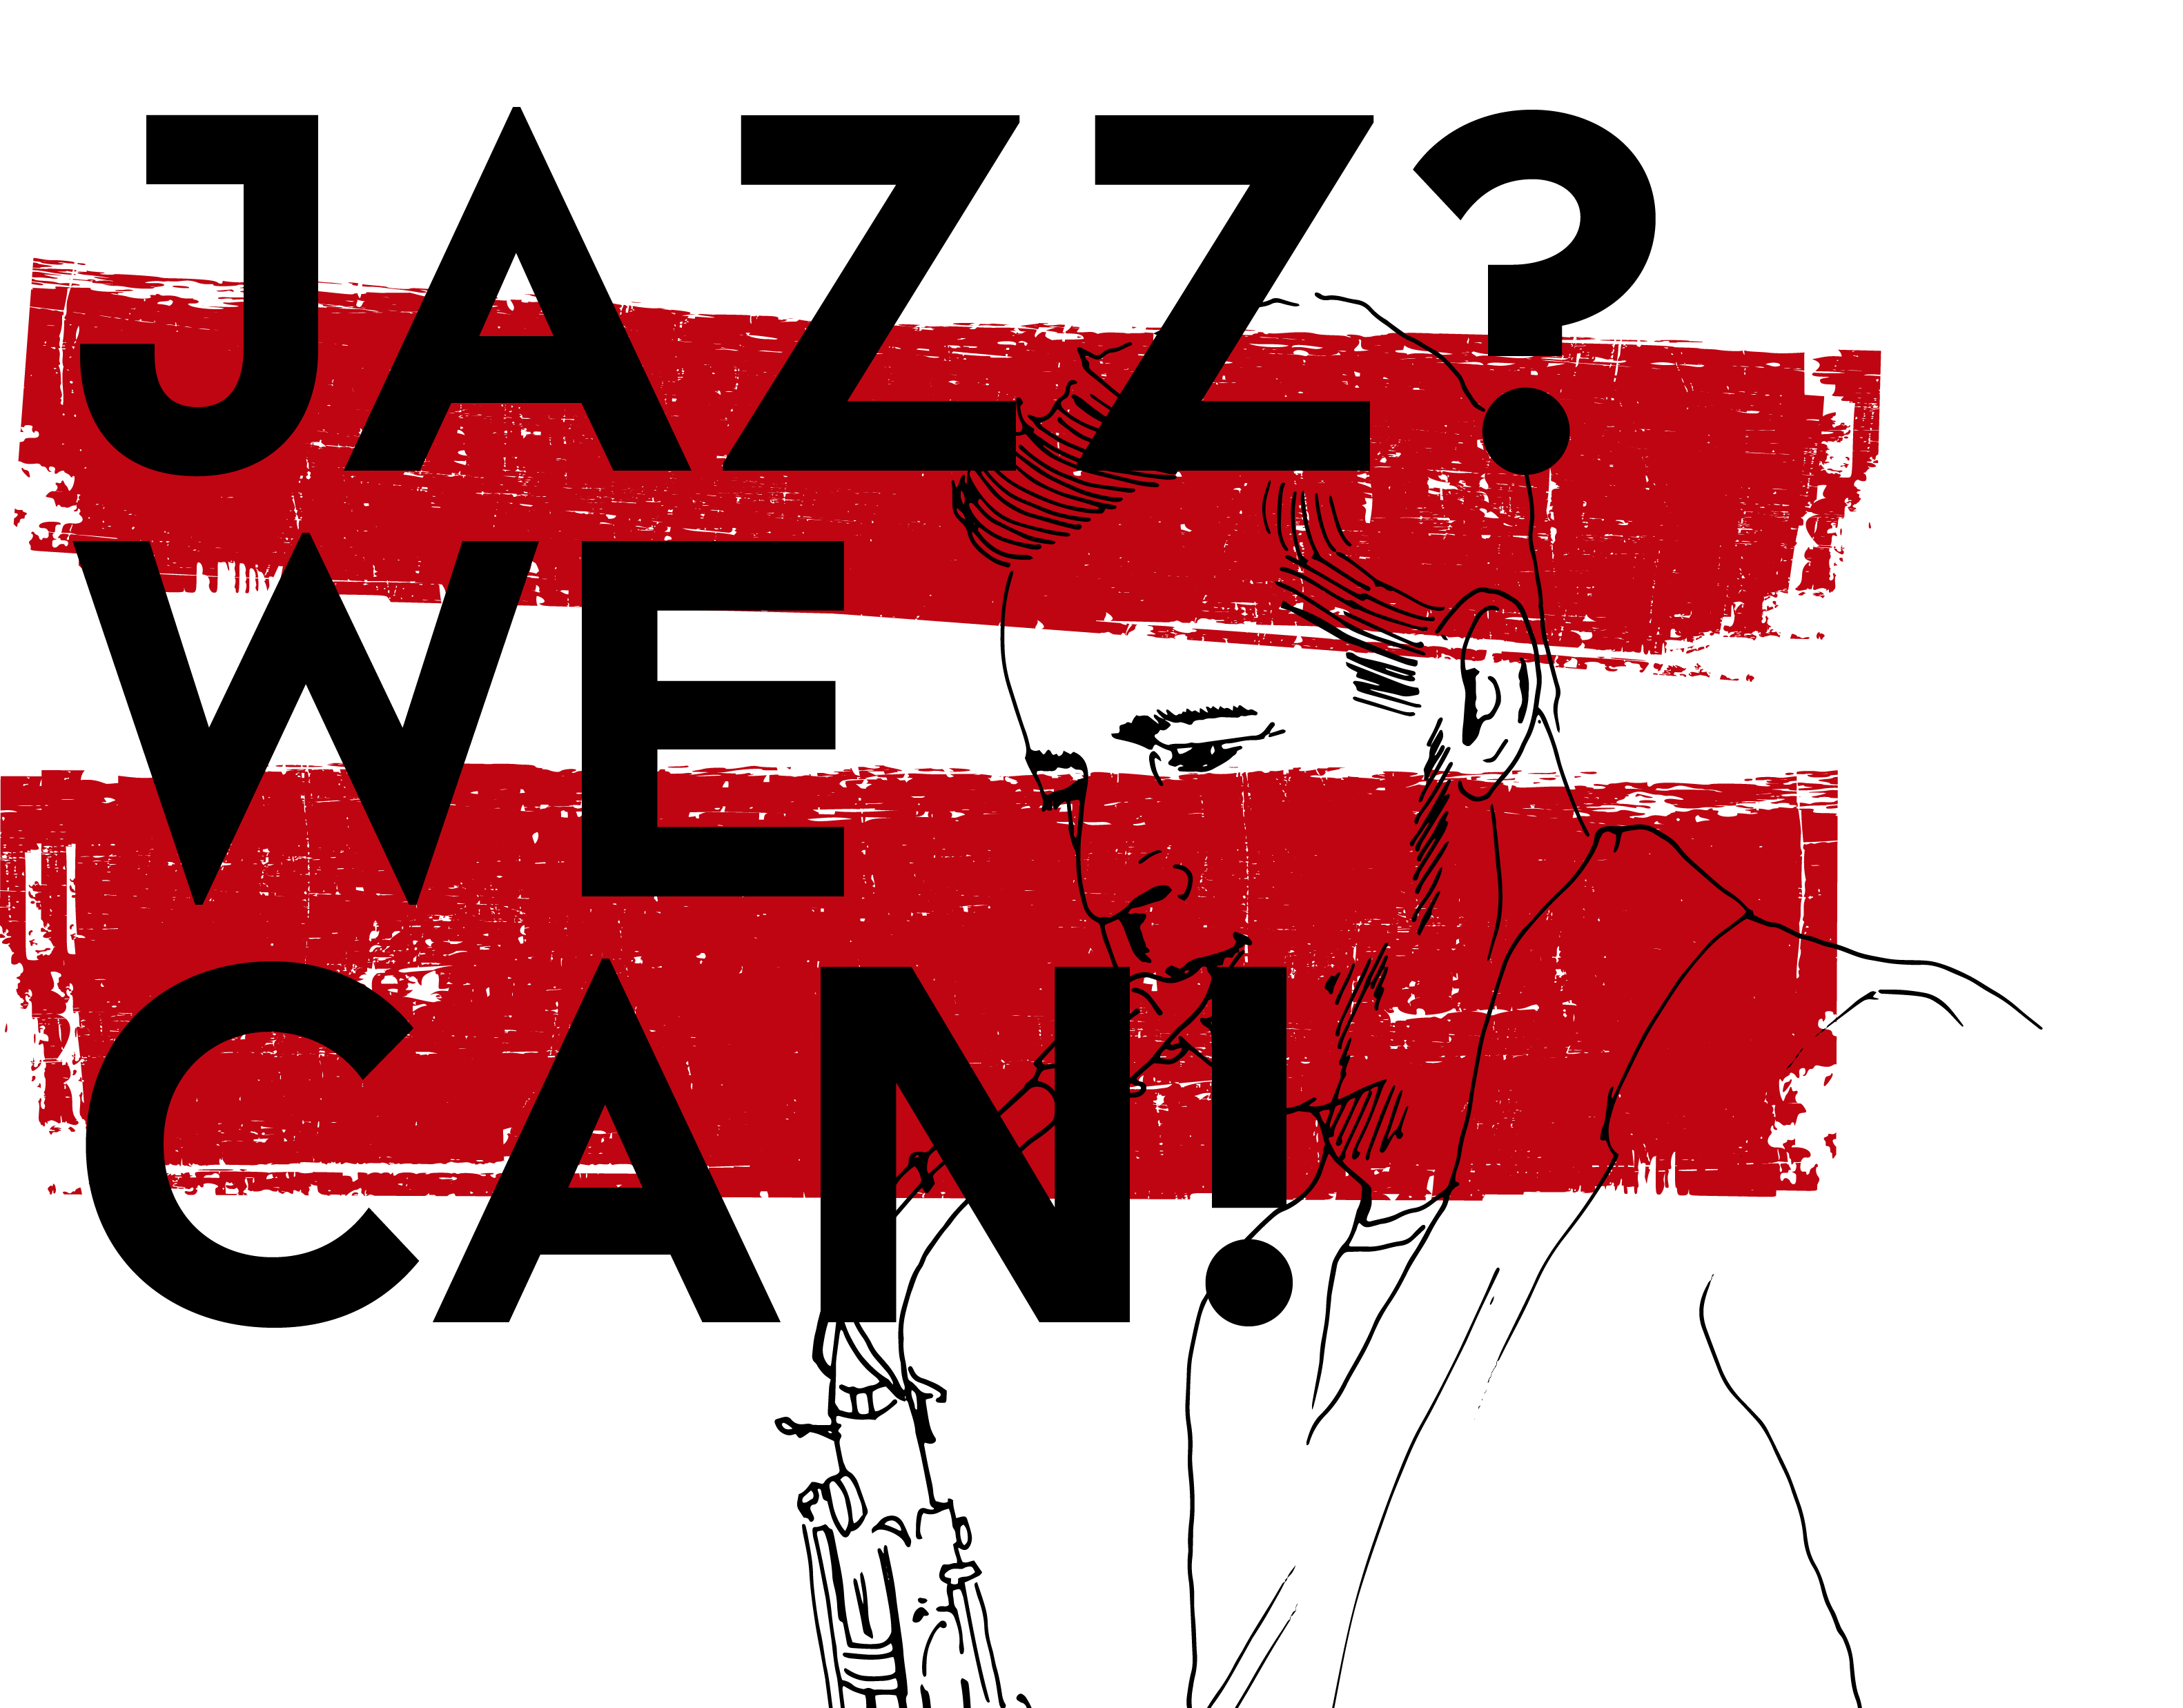 Jazz? We Can!